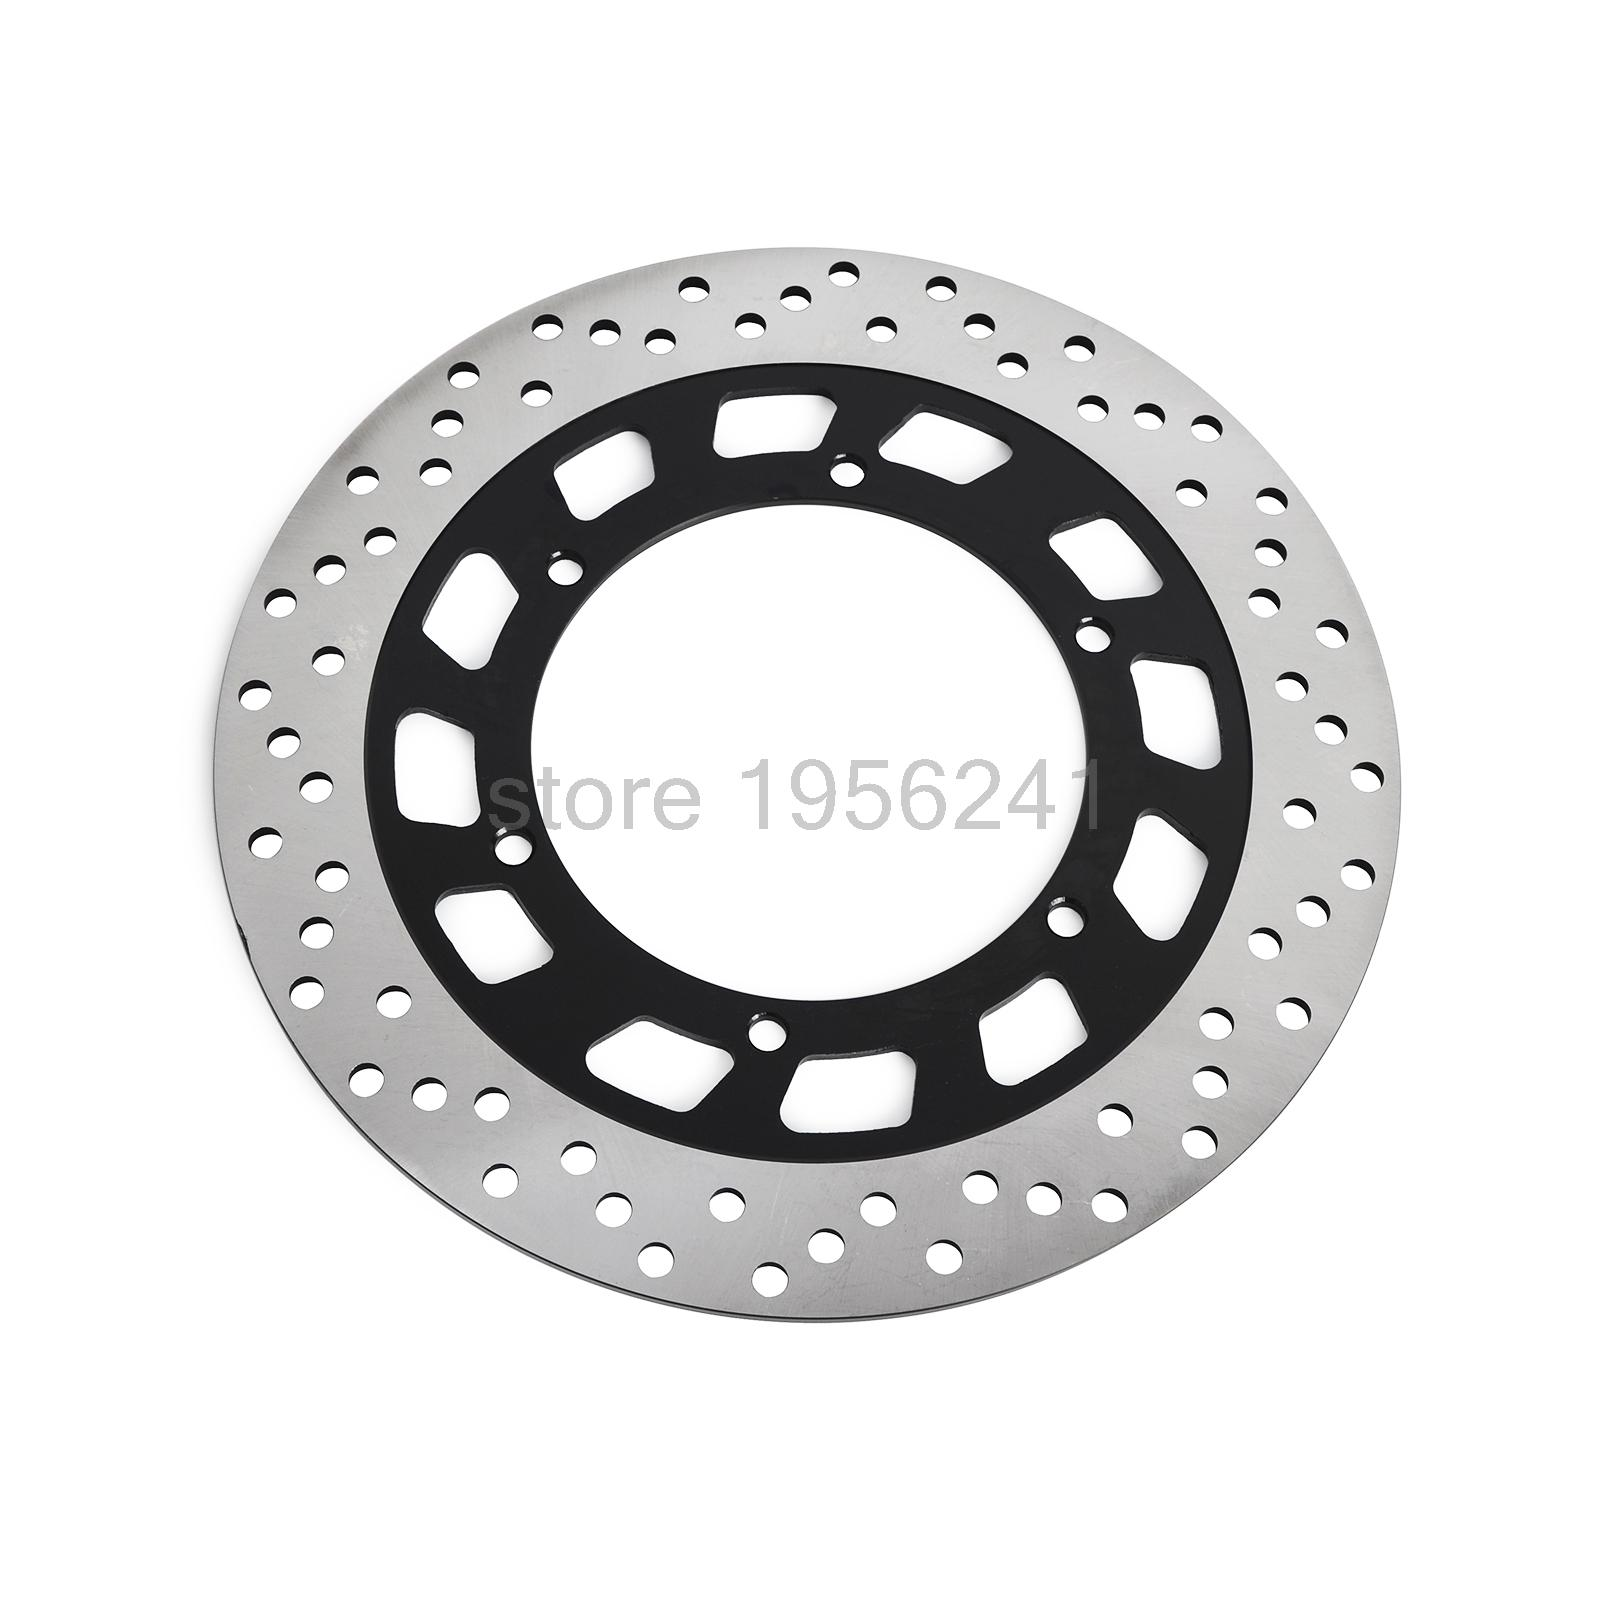 Motorcycle Front Right Brake Disc Rotor For Yamaha XV125 Virago 1997-2001 XVS125 Drag Star1999-2004 XV250 1995-2007 XVS250 01-04 ahl motorcycle front brake pads disks for yamaha xvs 650 950 1300 drag star 1997 2007 vstar custom 1997 2015 classic